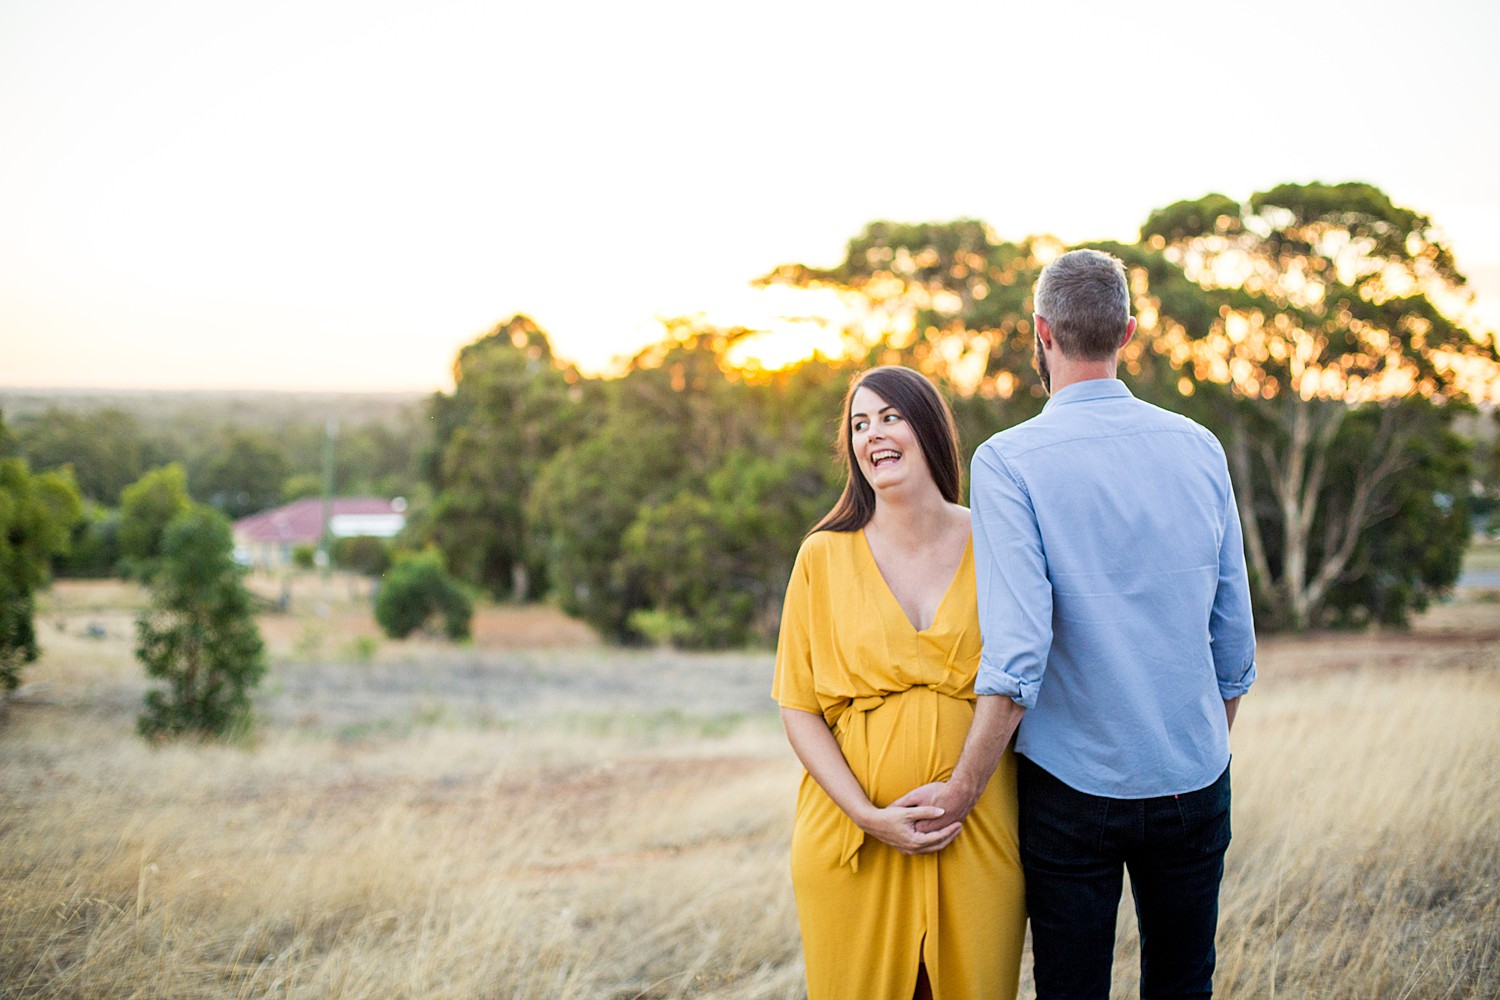 perth_hills_bush_maternity_photography_0014.jpg